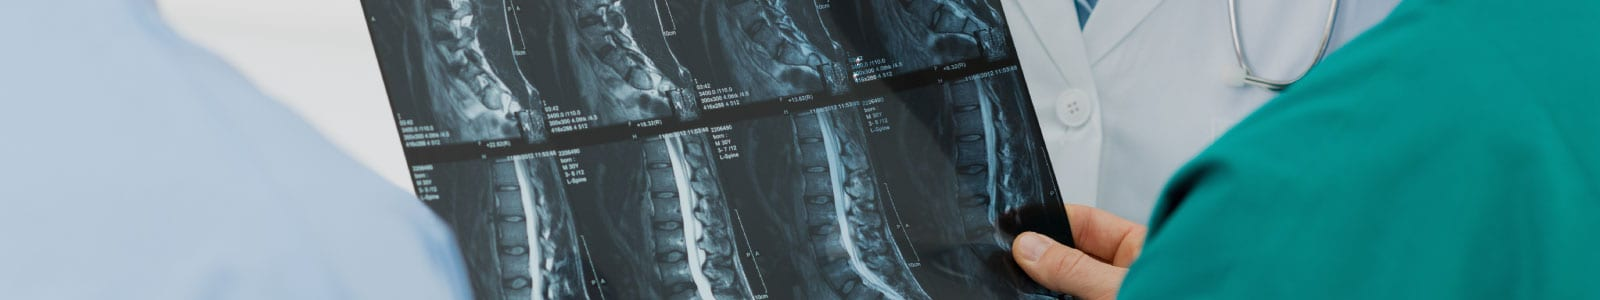 Spinal Cord xrays